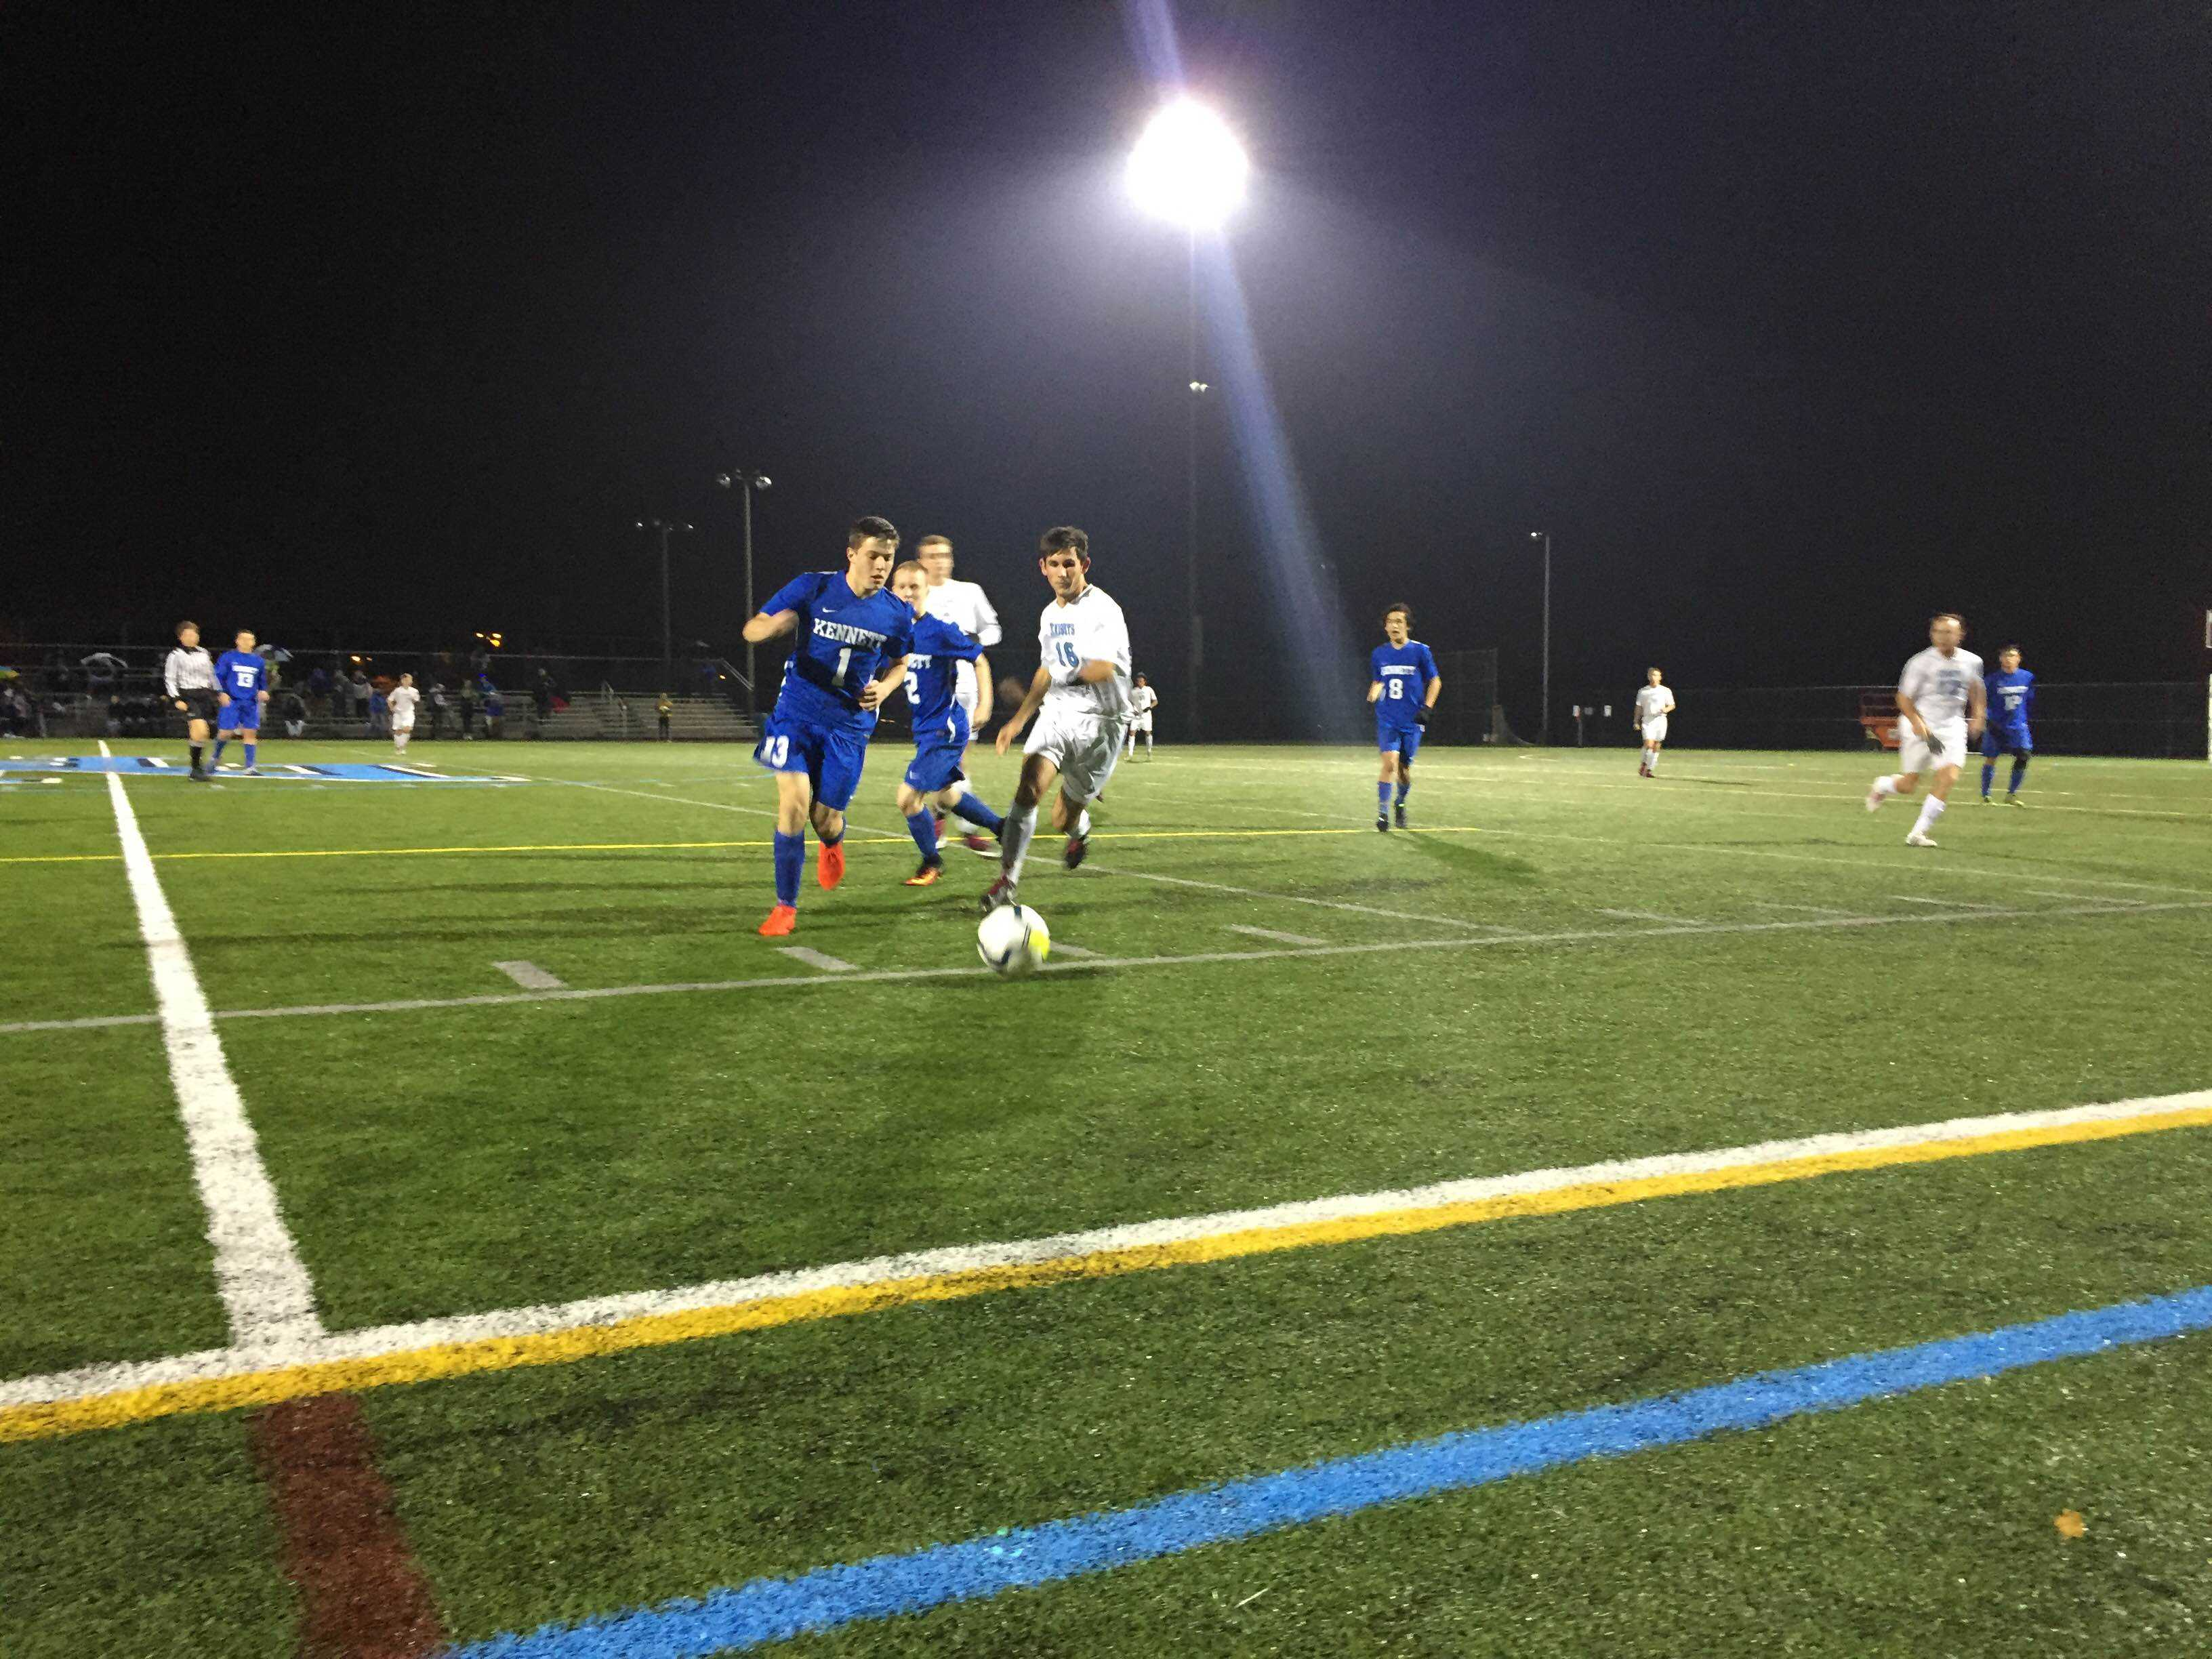 On Thursday evening, the North Penn Men's Soccer Team (No. 5, 16-3) shut out the Kennett Blue Demons (No. 21, 10-6-3) in the second round of playoffs, extending their season to the third round.